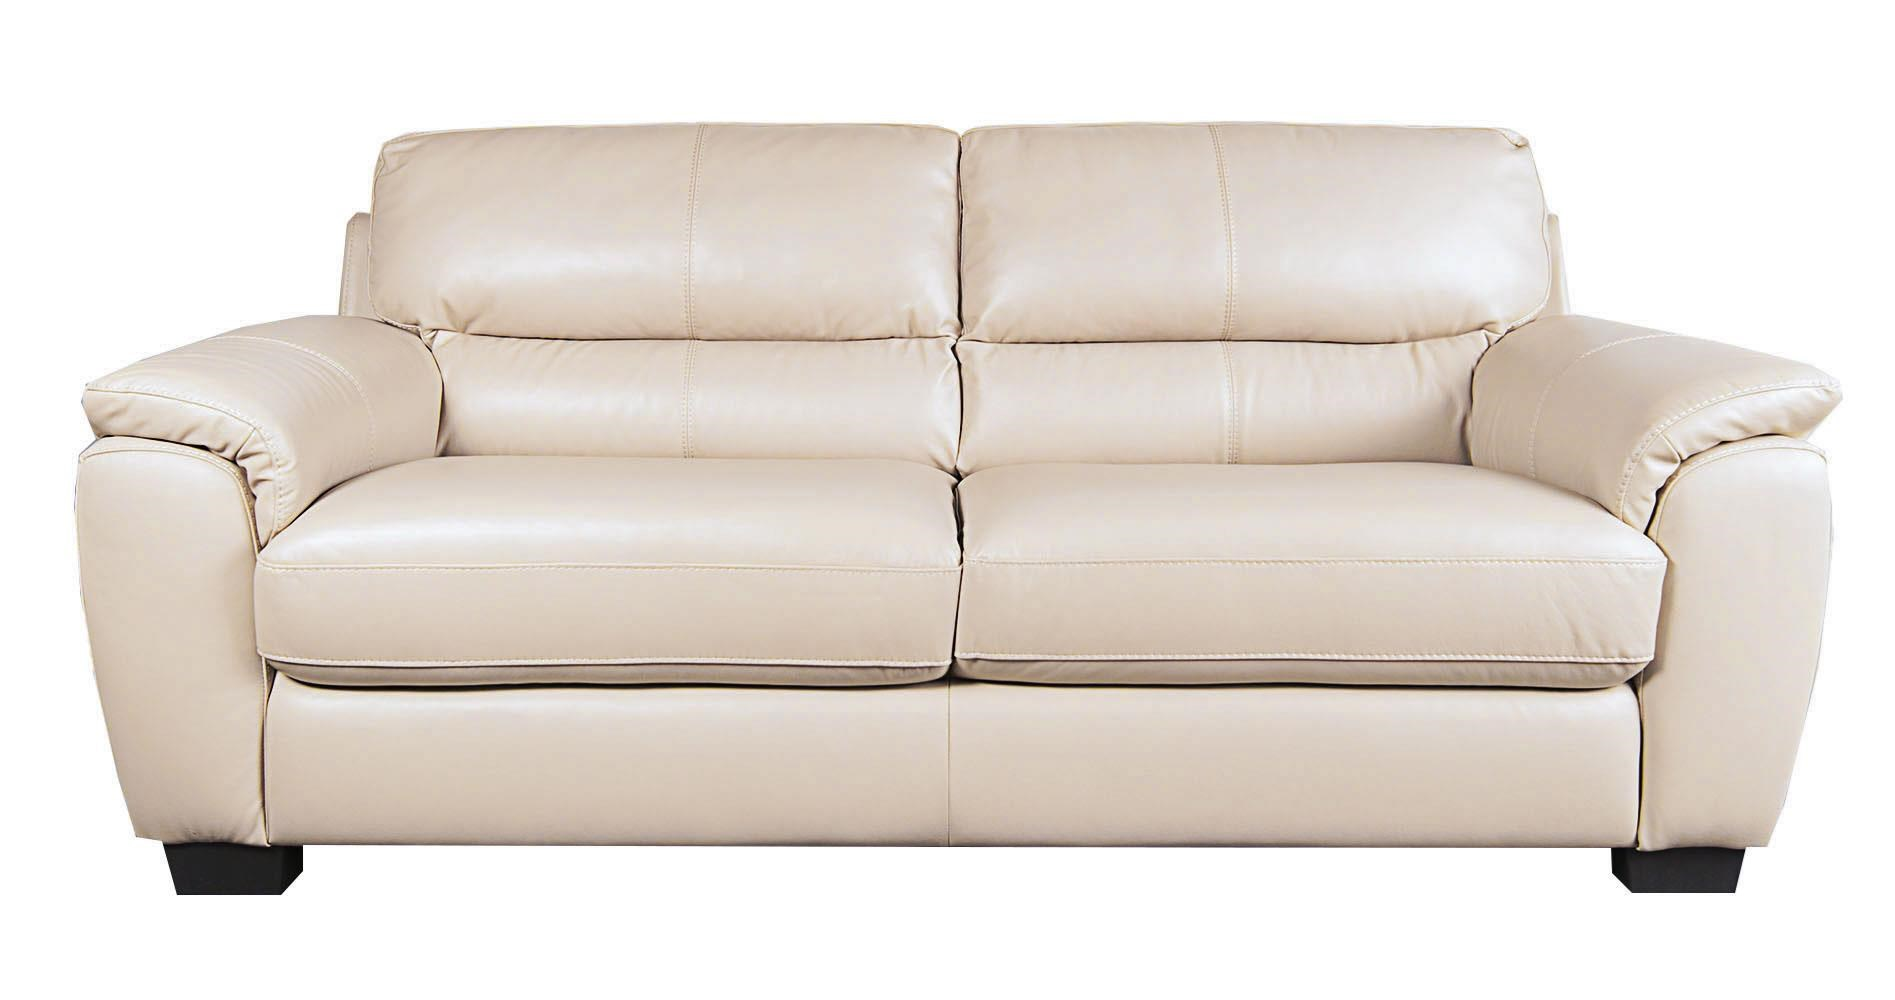 San Lorenzo Holt Holt 100% Leather Sofa   Item Number: 810989561